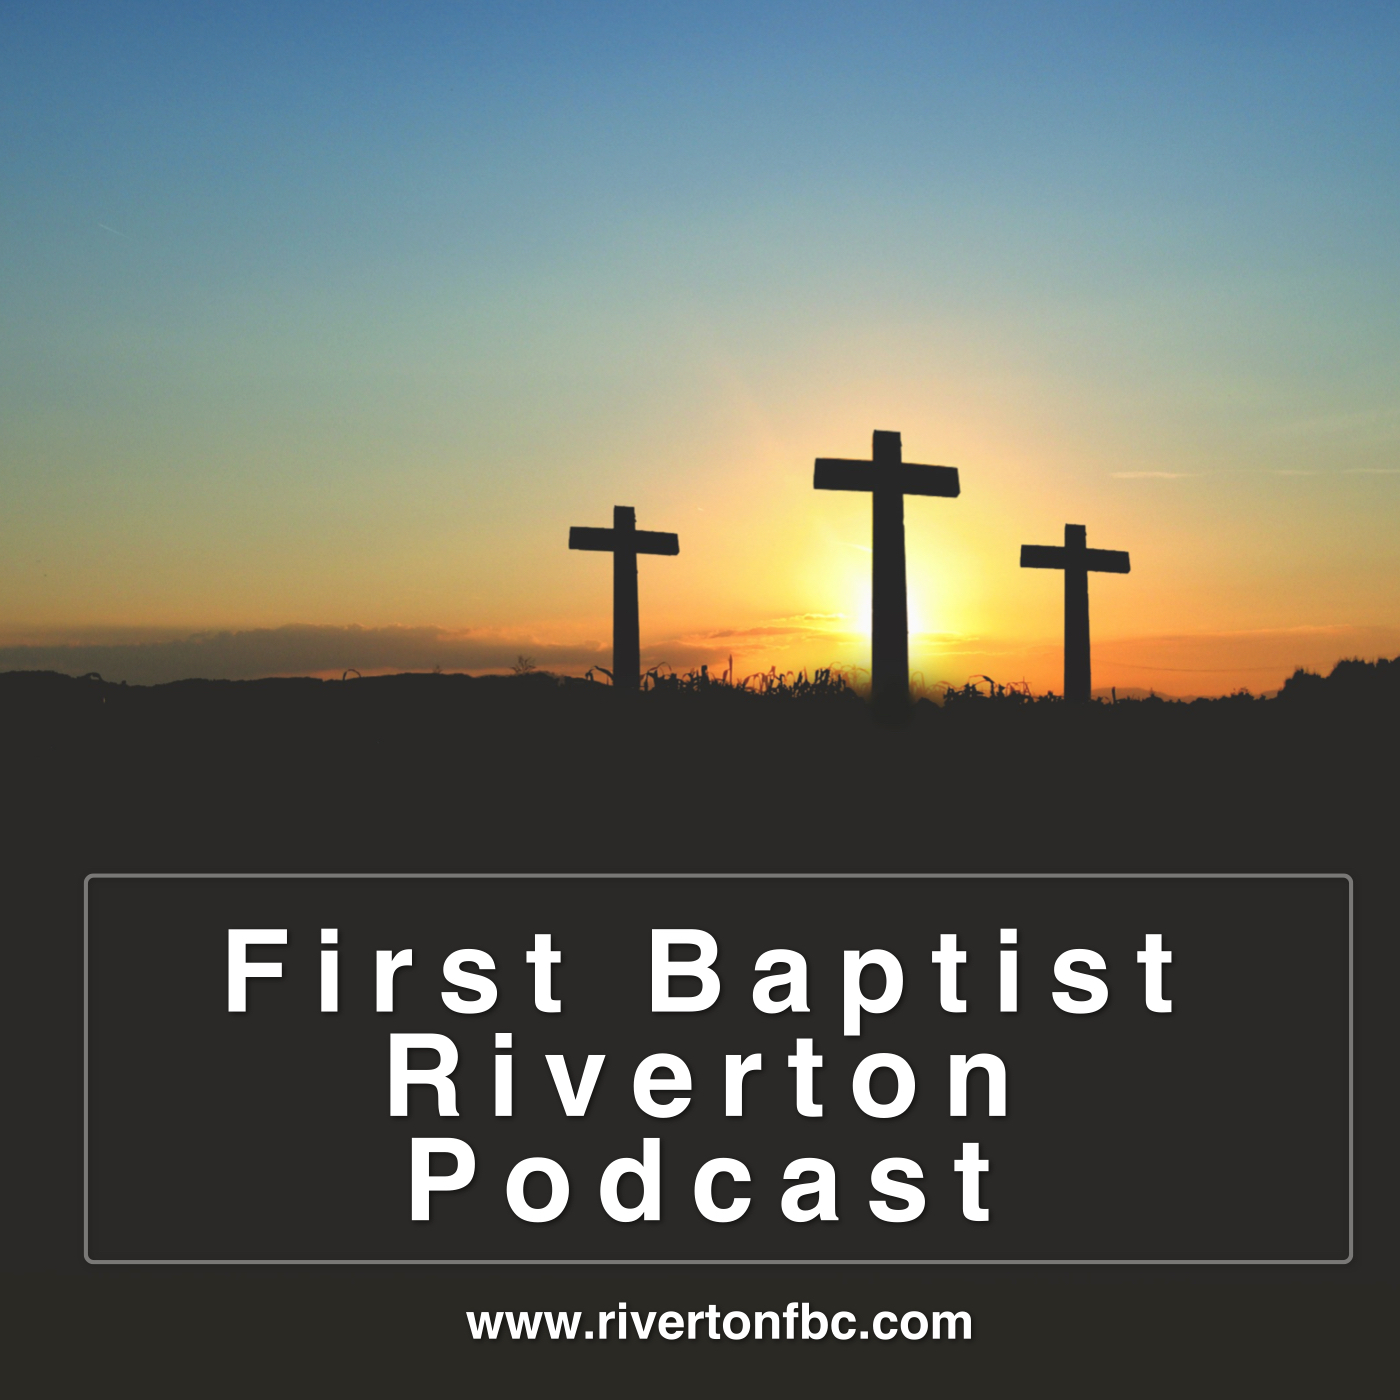 FBCR Podcast EP70 - Sunday Morning Message from Bro. Michael Pearce